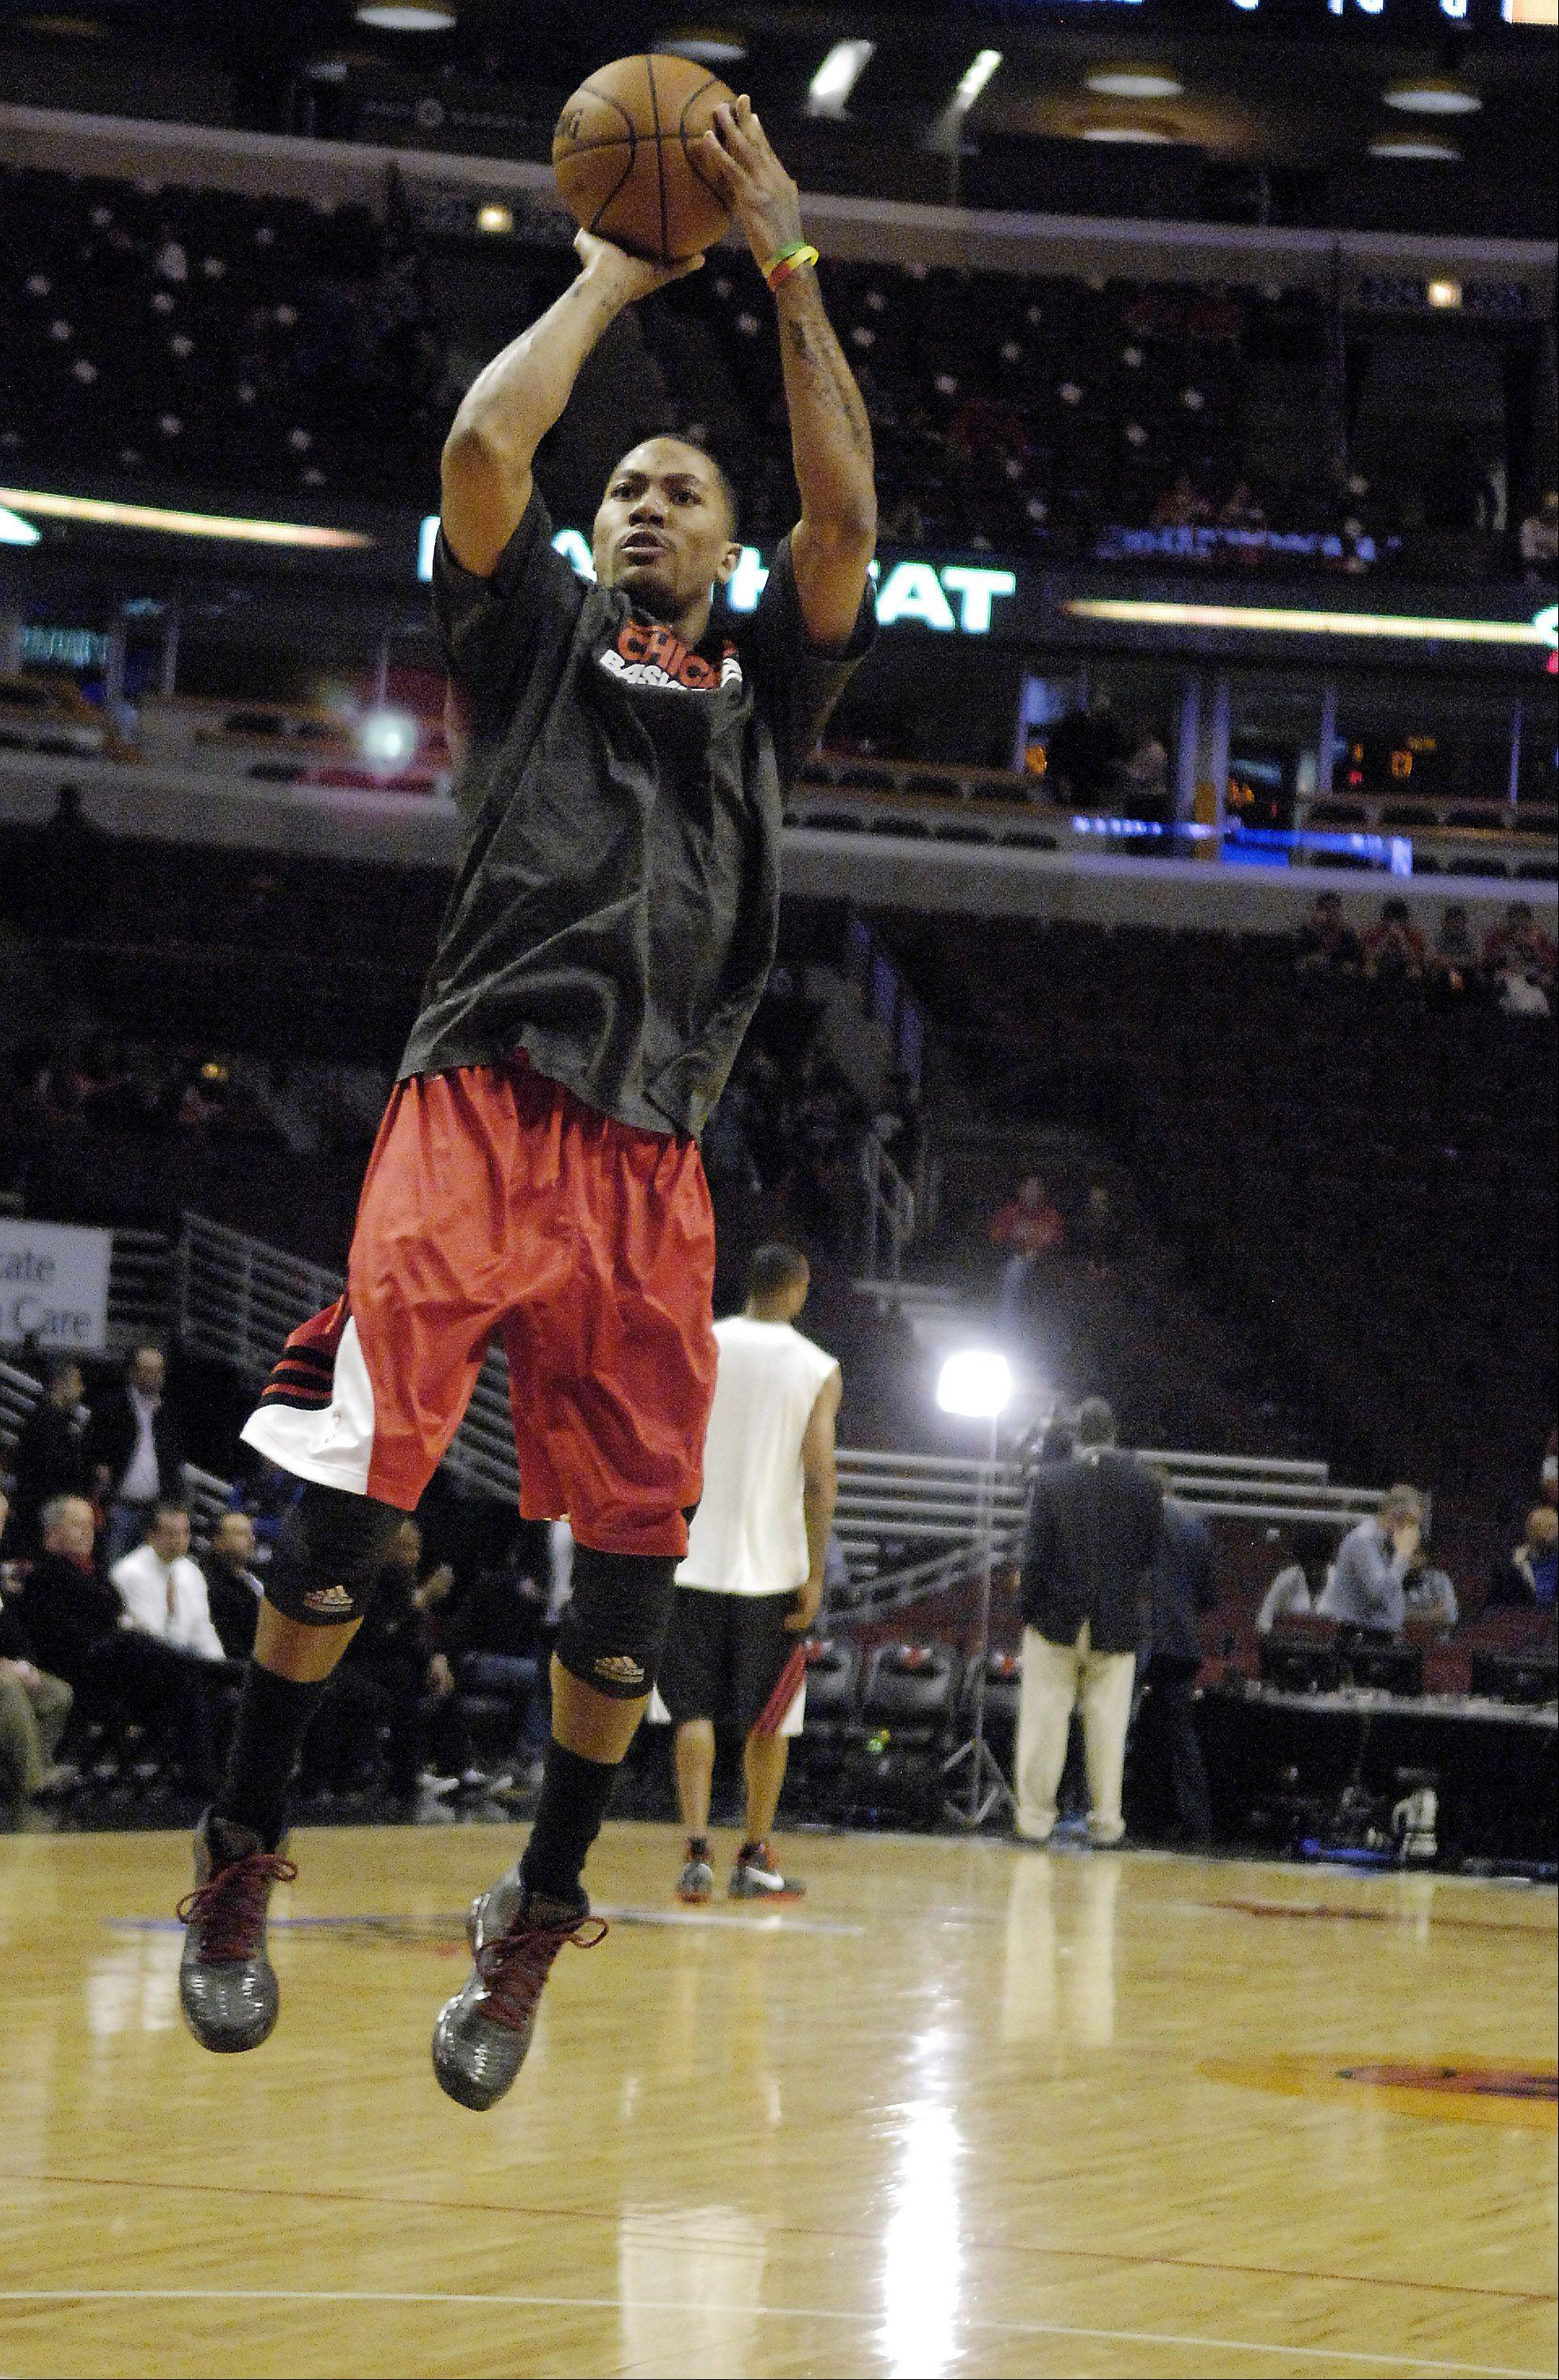 Injured Chicago Bulls point guard Derrick Rose (1) warms up before game 3 of the NBA Eastern Conference semifinals at the United Center in Chicago Friday.